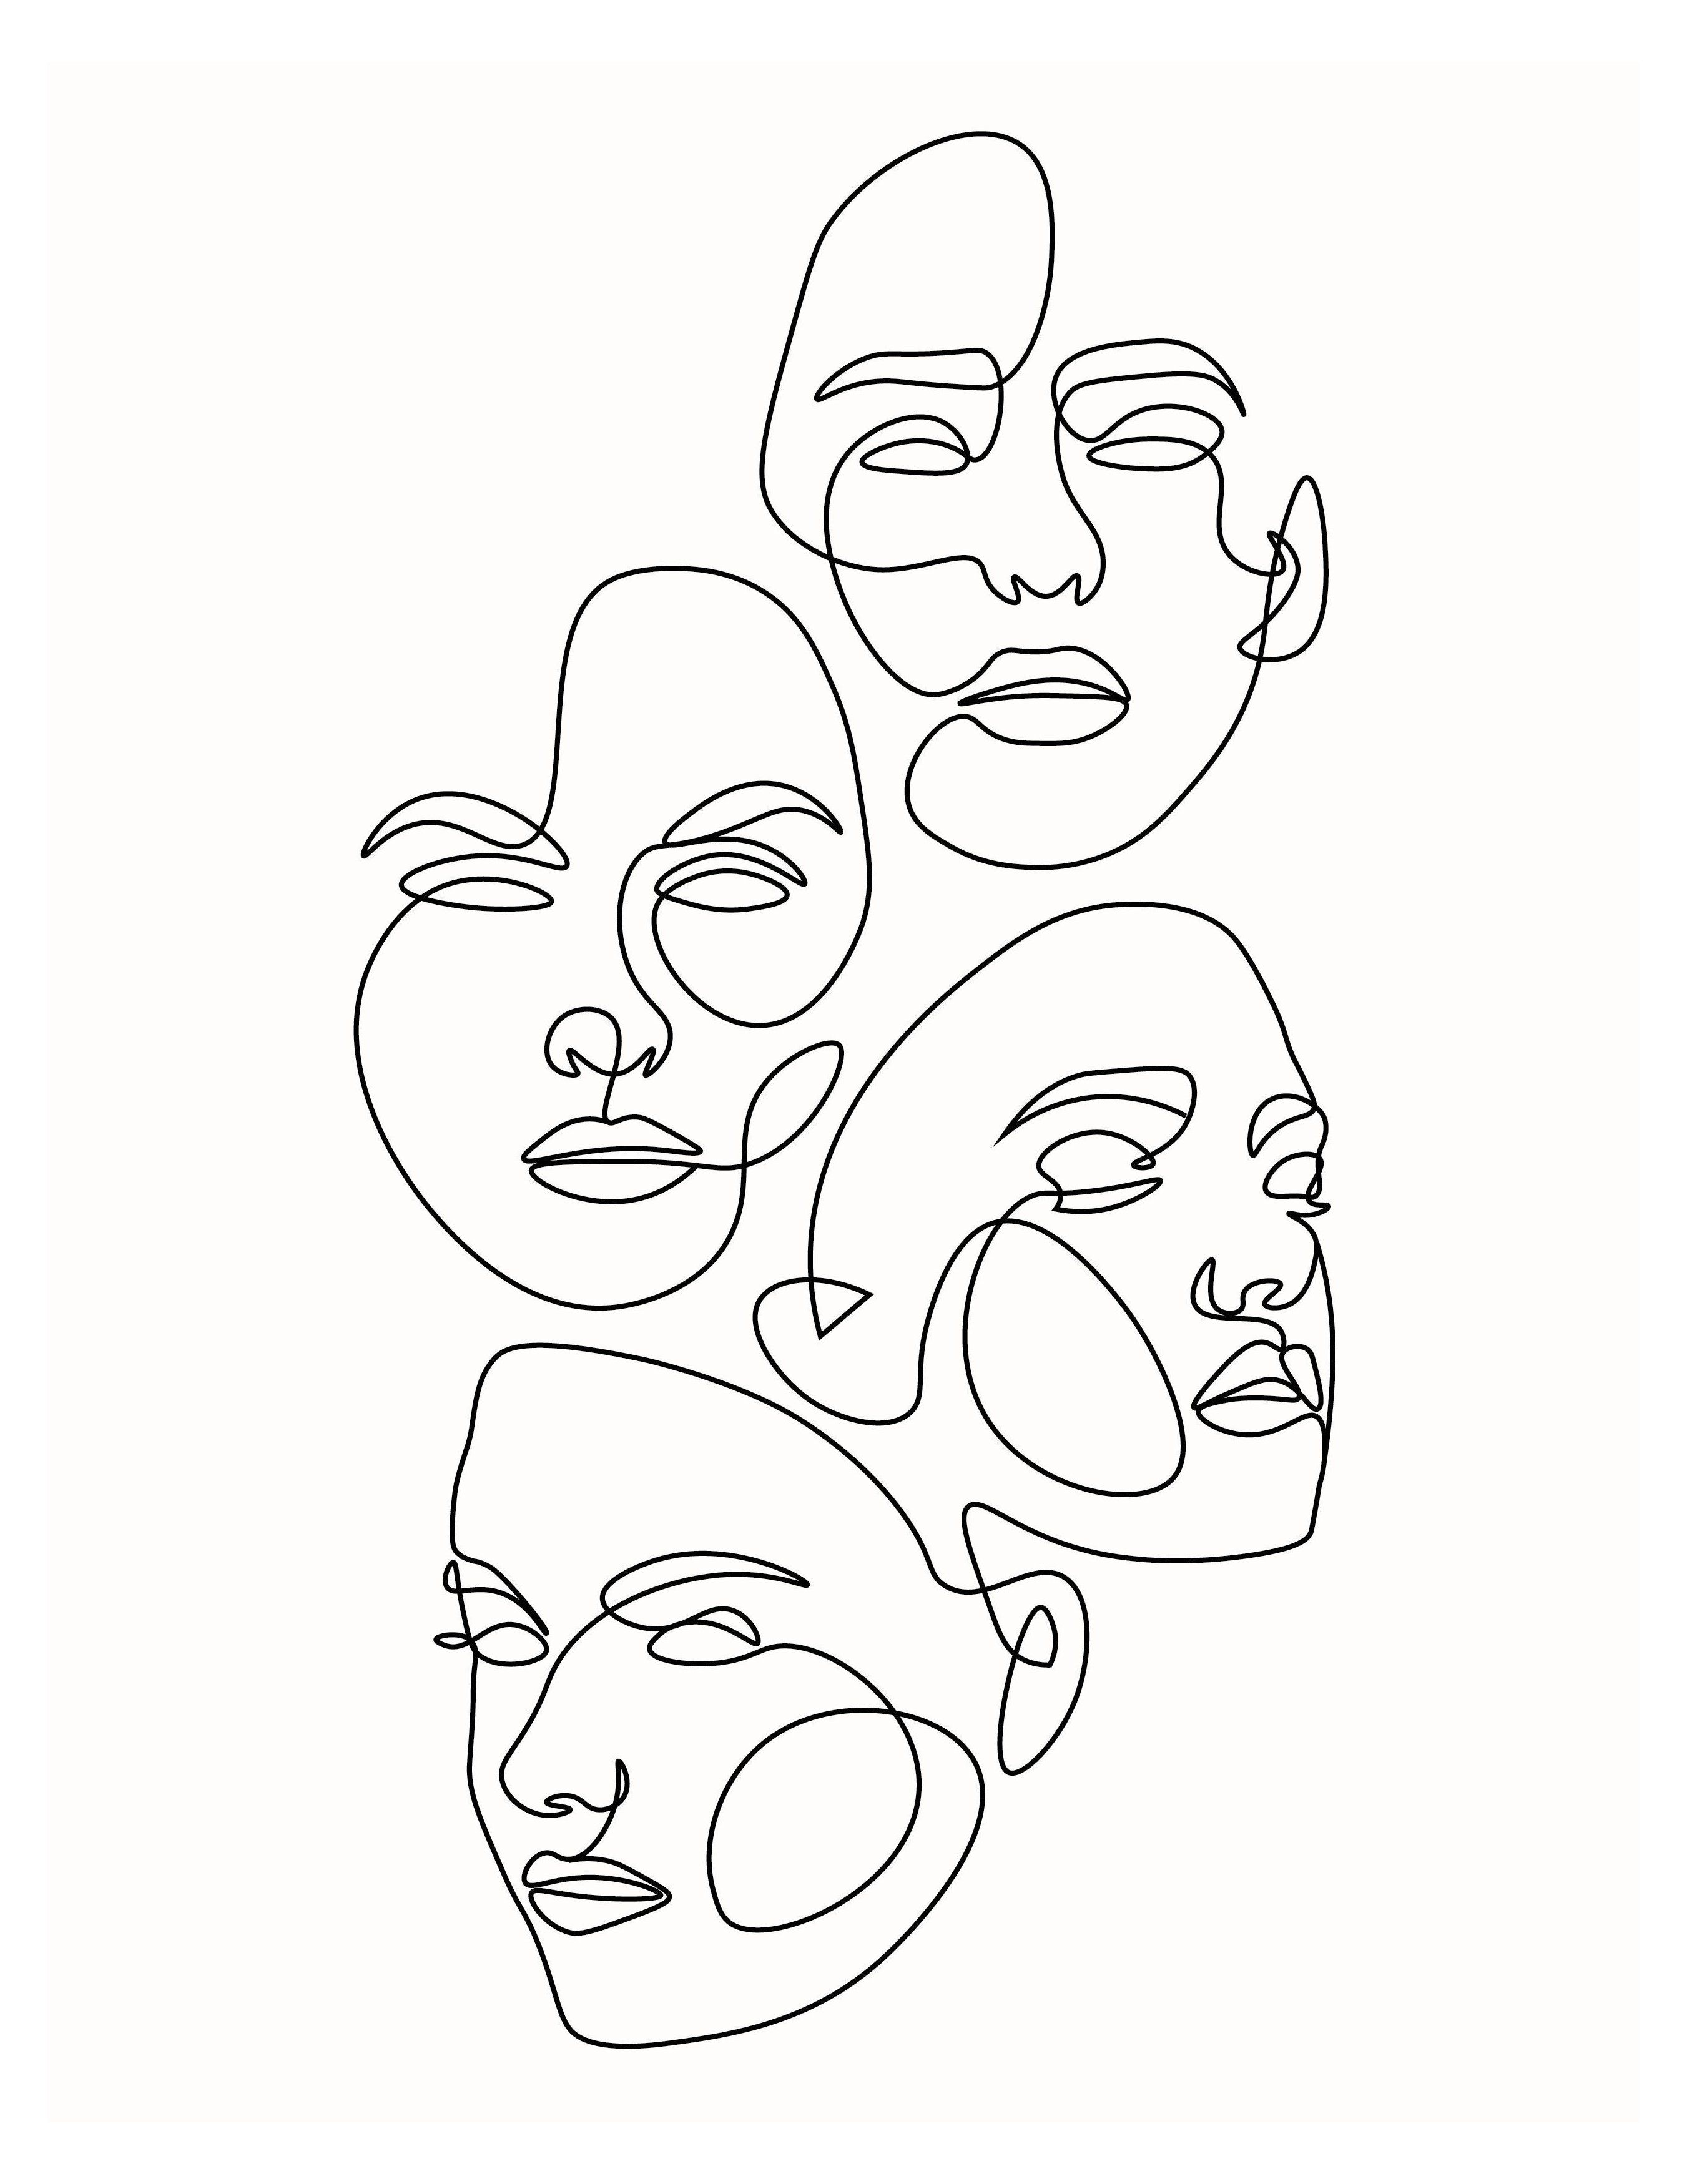 Pin By Gwendoline Bonthuys On Paintings In 2020 Abstract Face Art Outline Art Art Drawings